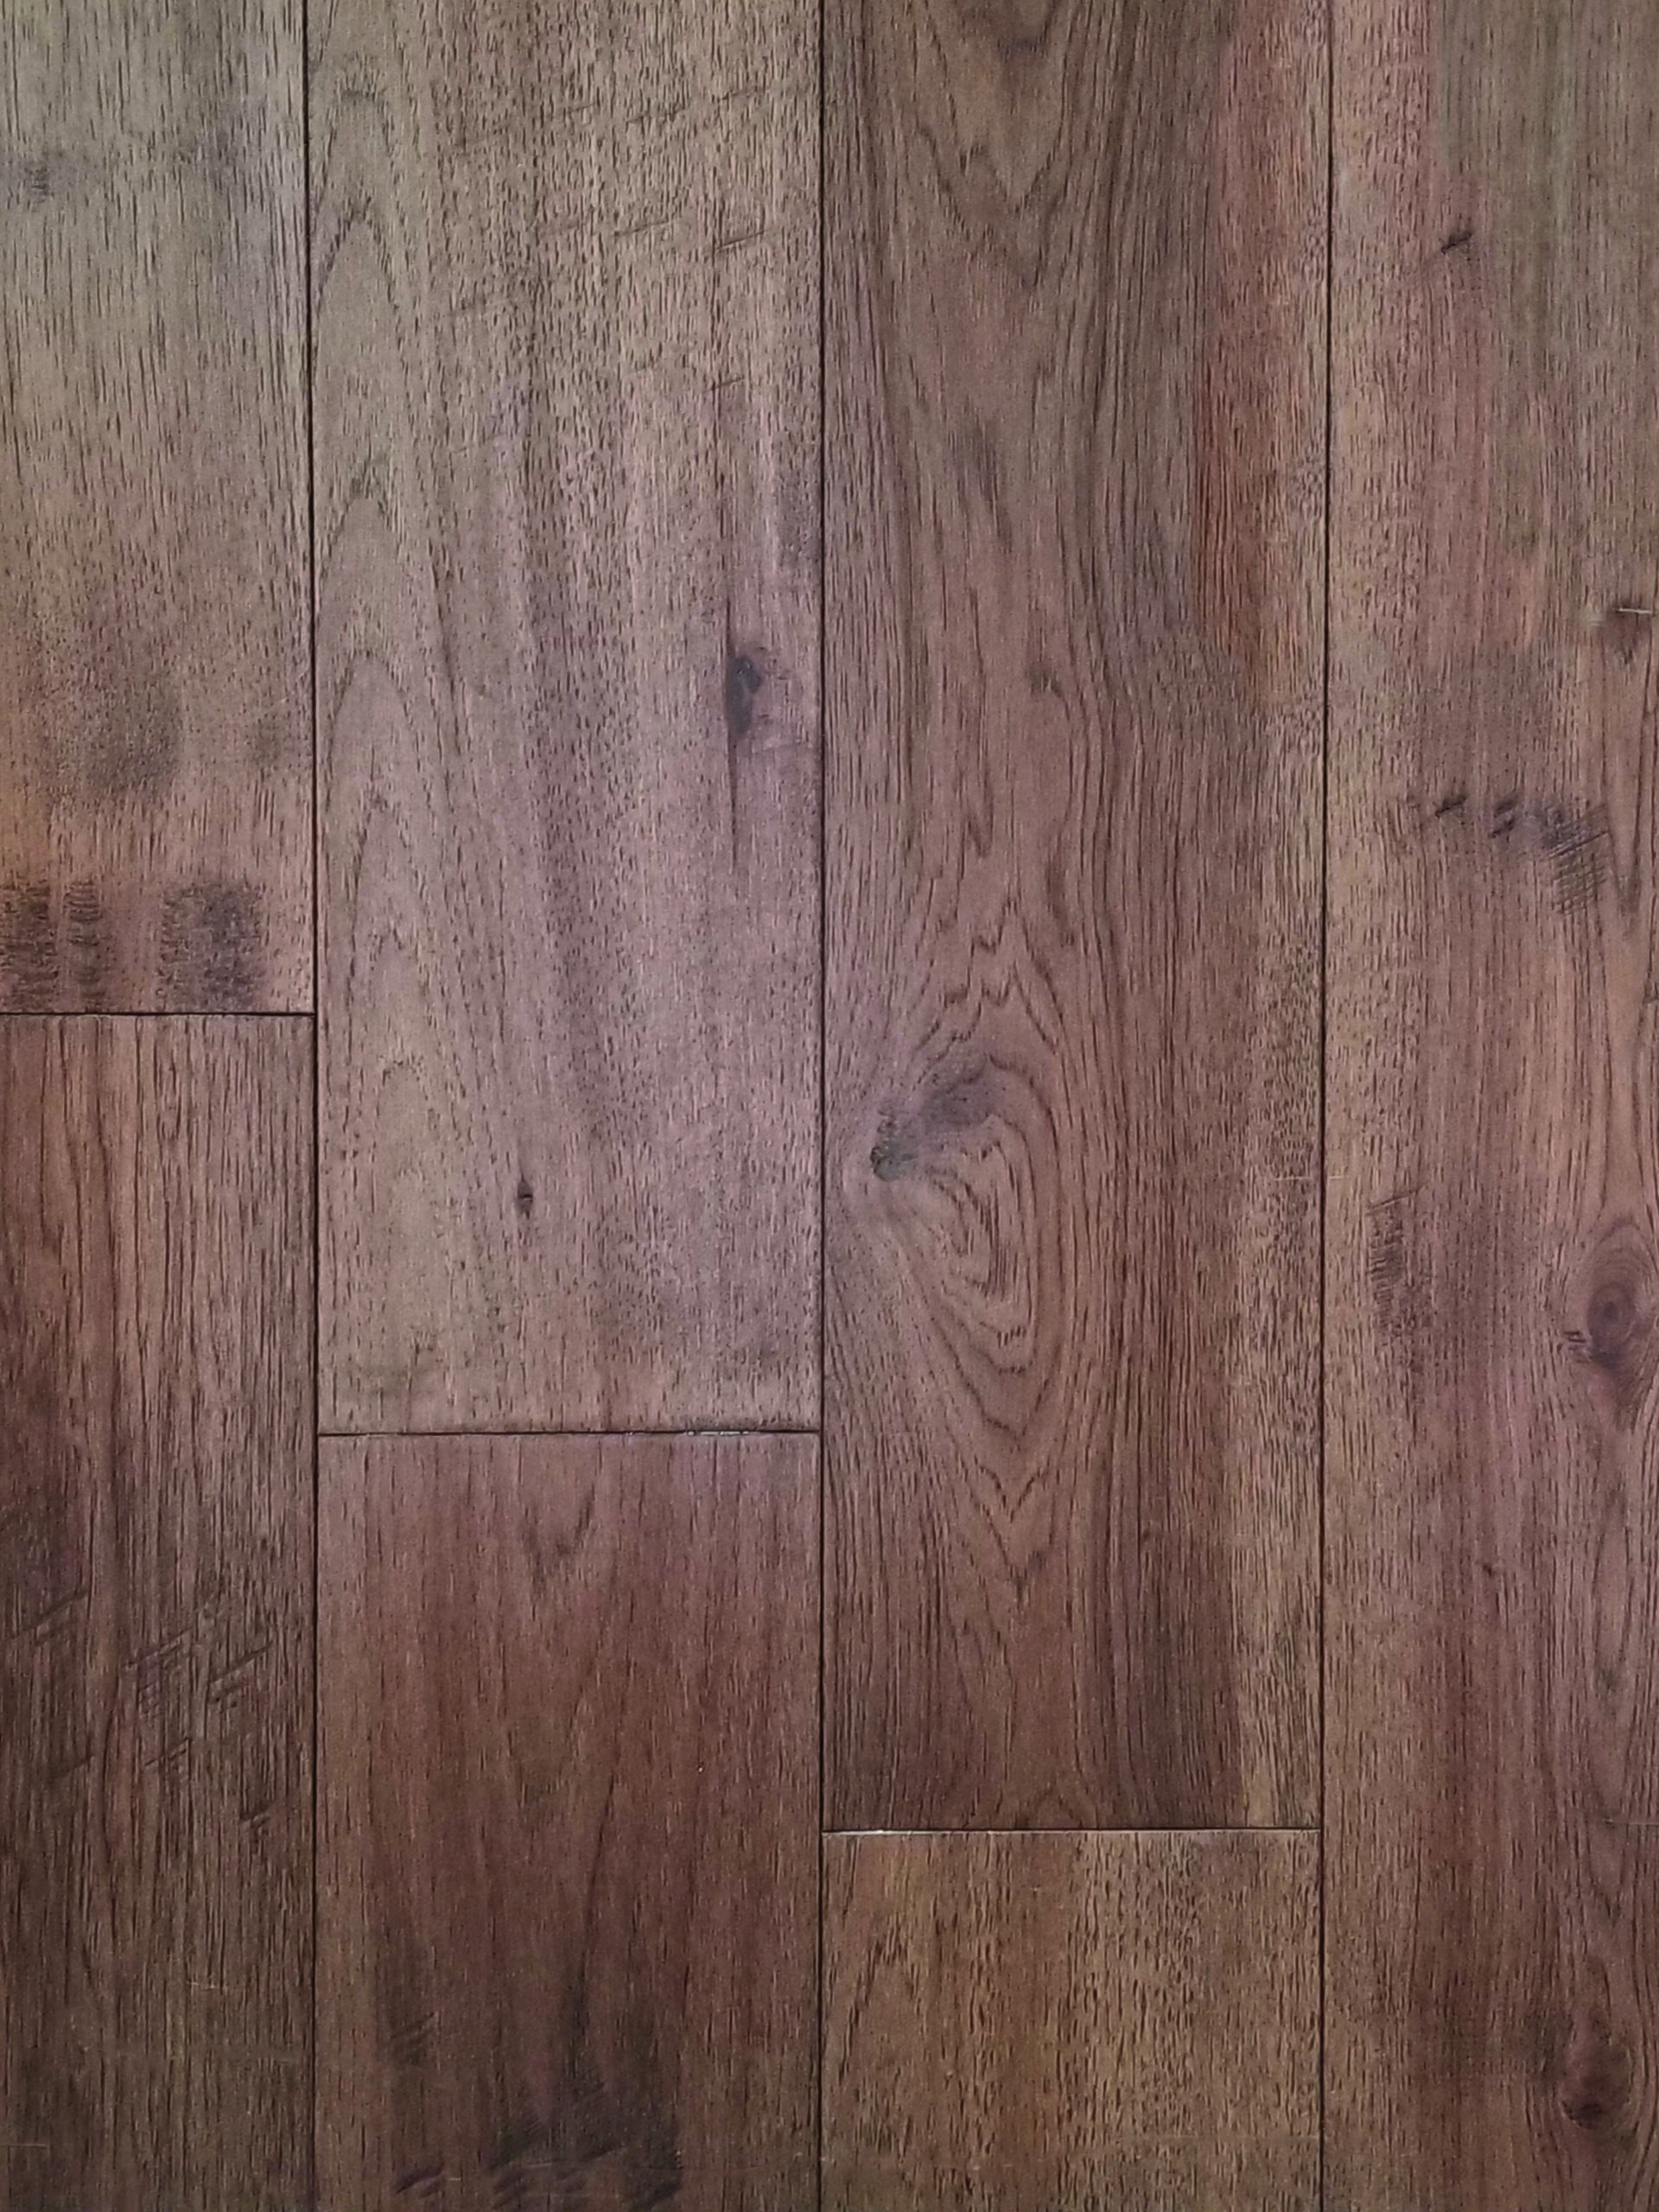 6.5x.75in Engineered Hickory Grey Stone-4.55